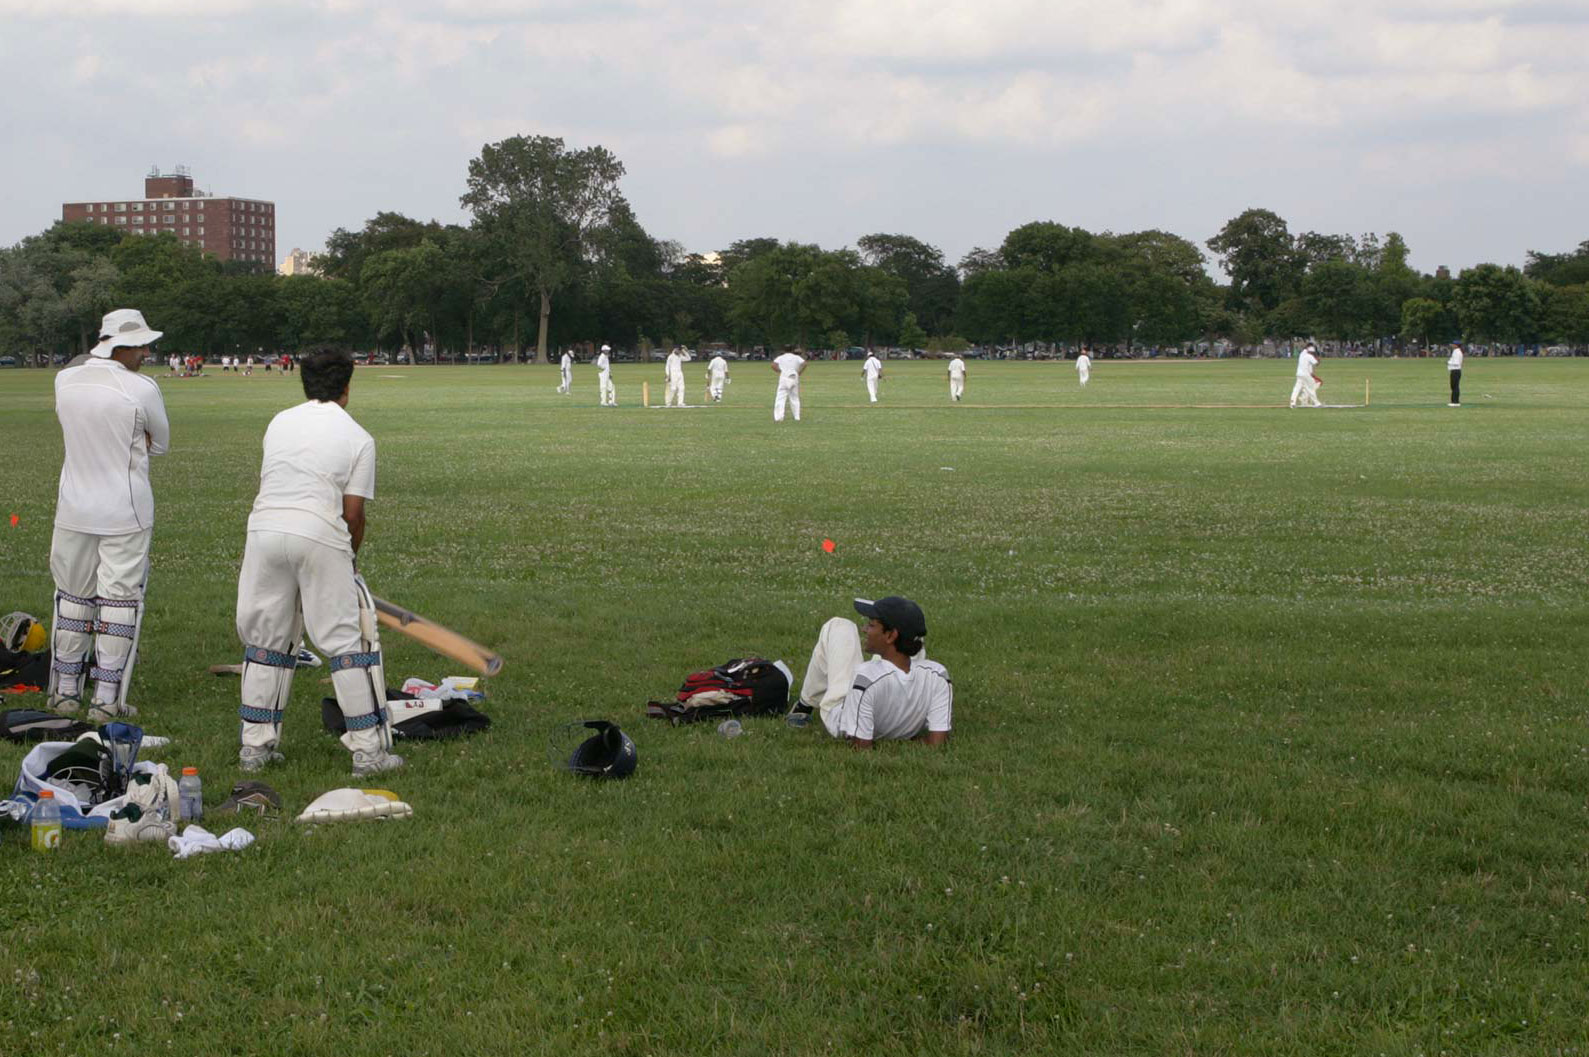 Chicagoans have played cricket, baseball, and football on Washington Park's pastoral meadow, known as the South Open Green, for well over 100 years. Photo by Lucas Blair, 2009.